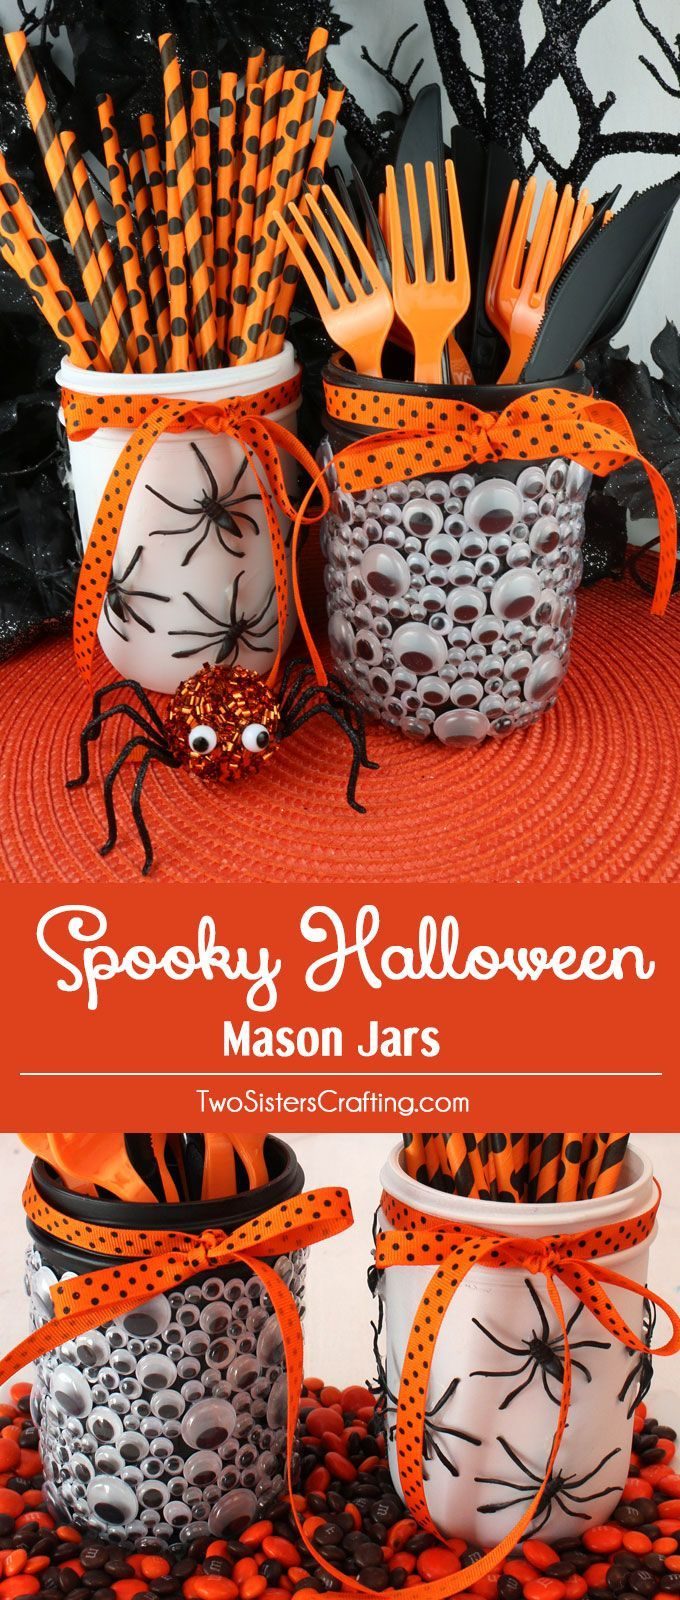 ... Party City Decorations U0026 Props For Halloween At Low Wholesale Prices.  Posted ...